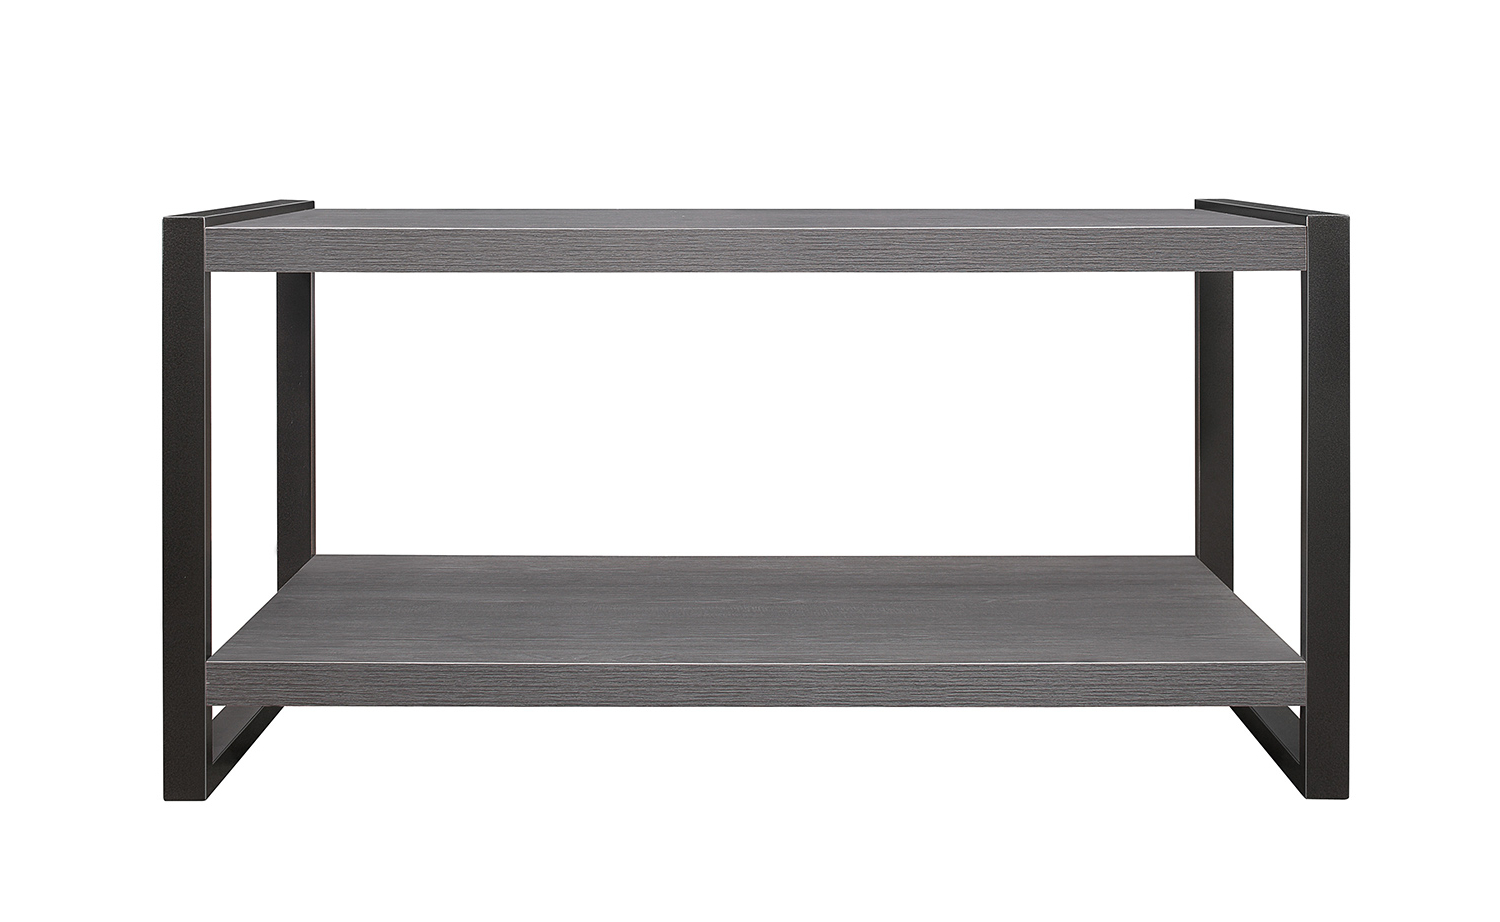 Homelegance Dogue Cocktail/coffee Table – Gunmetal Gray 3606 30 Throughout Well Known Gunmetal Coffee Tables (View 11 of 20)